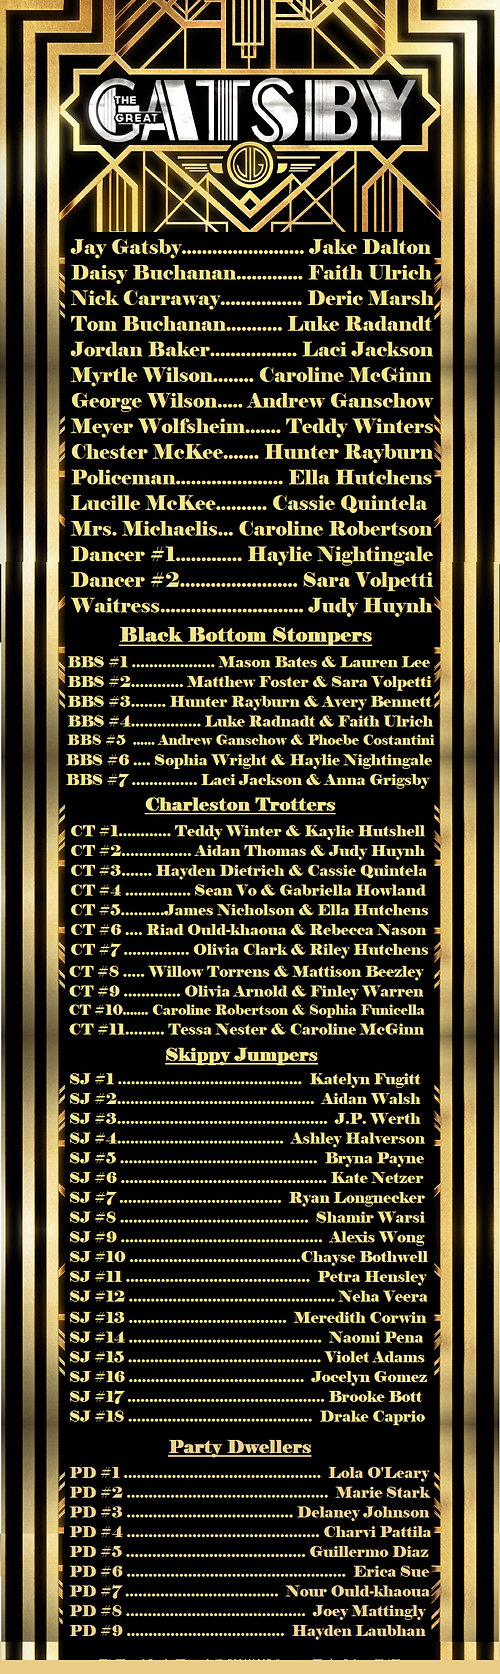 Gatsby Cast List New.png